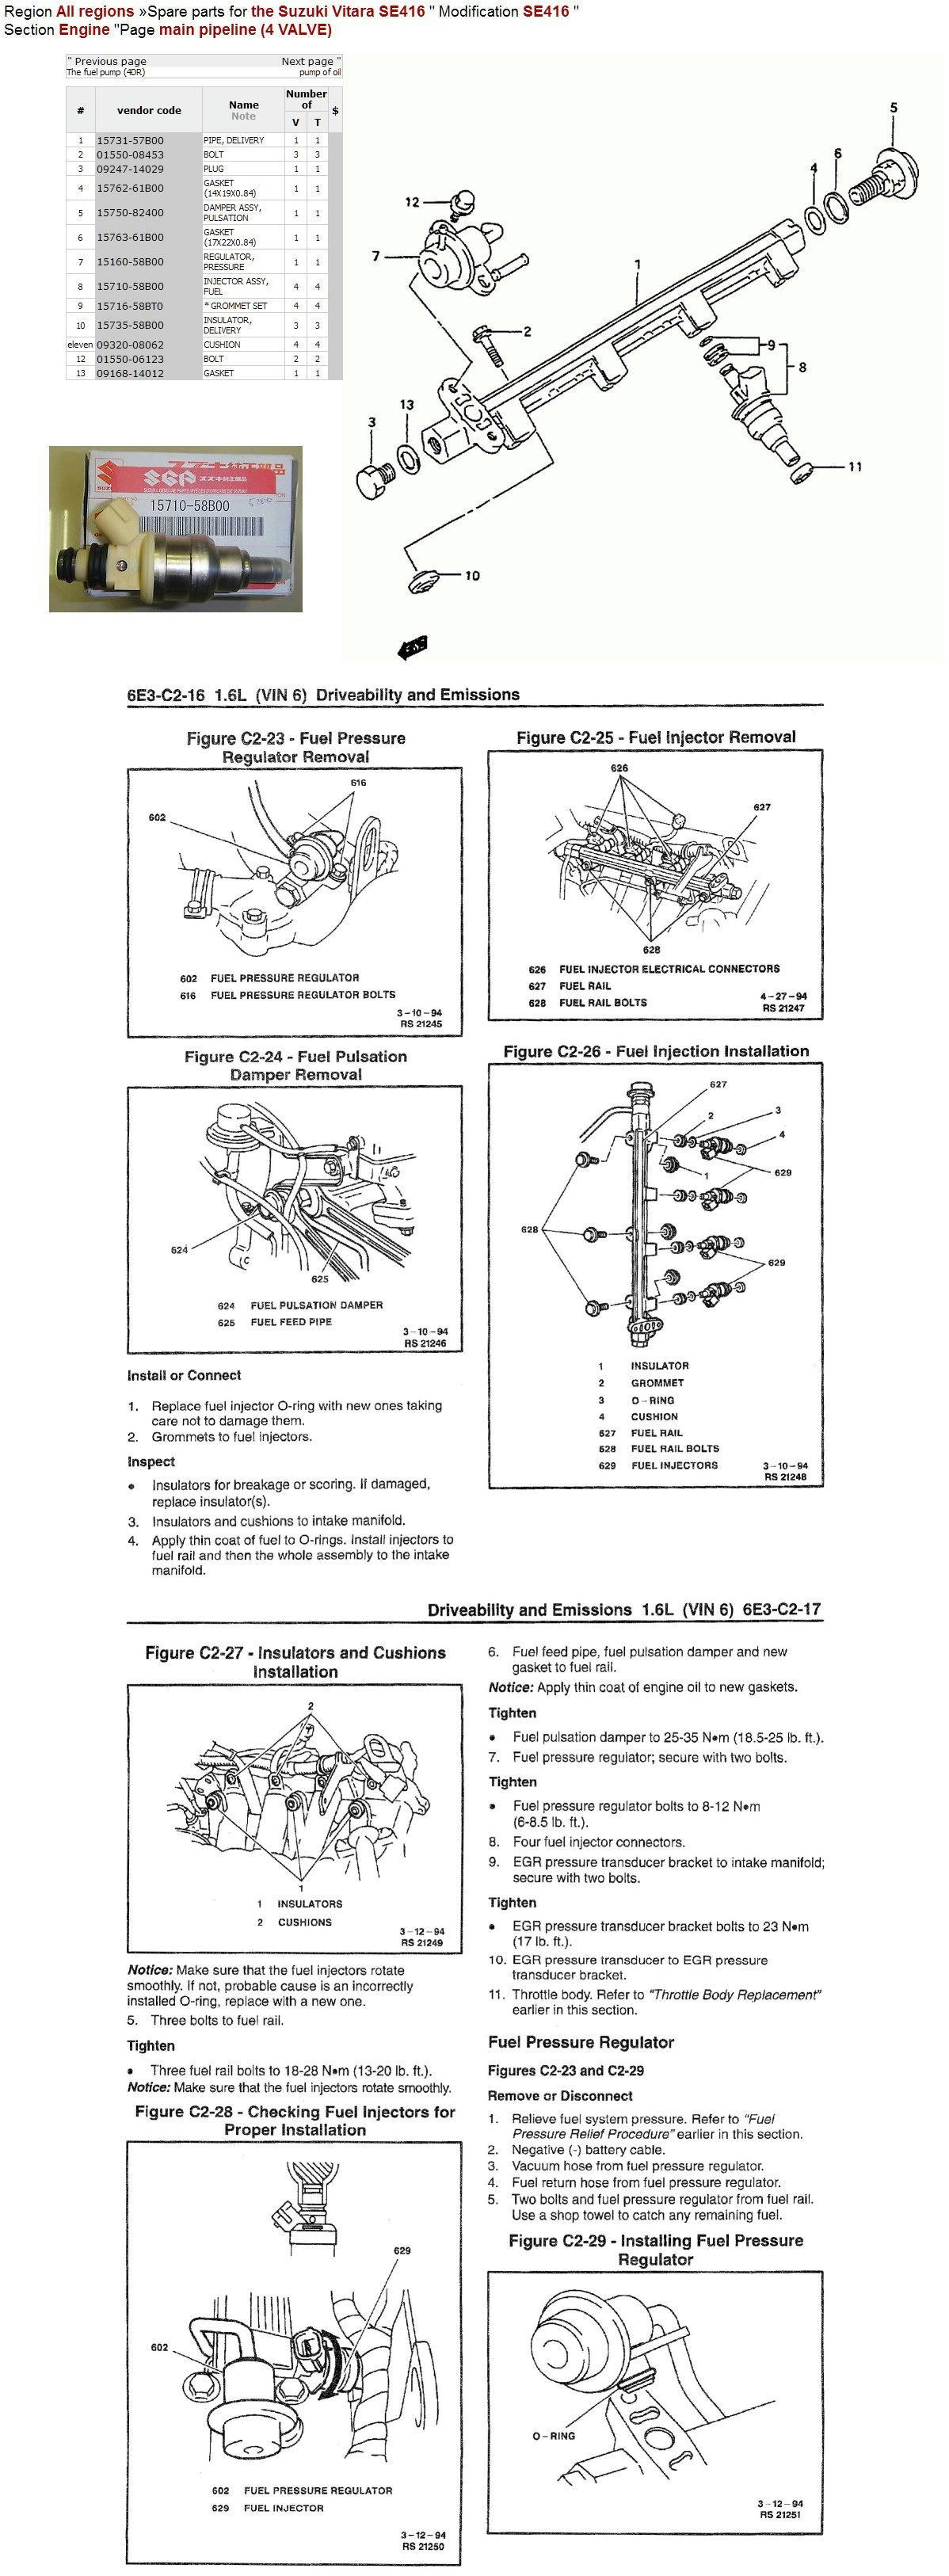 Replacing Fuel Injectors Question